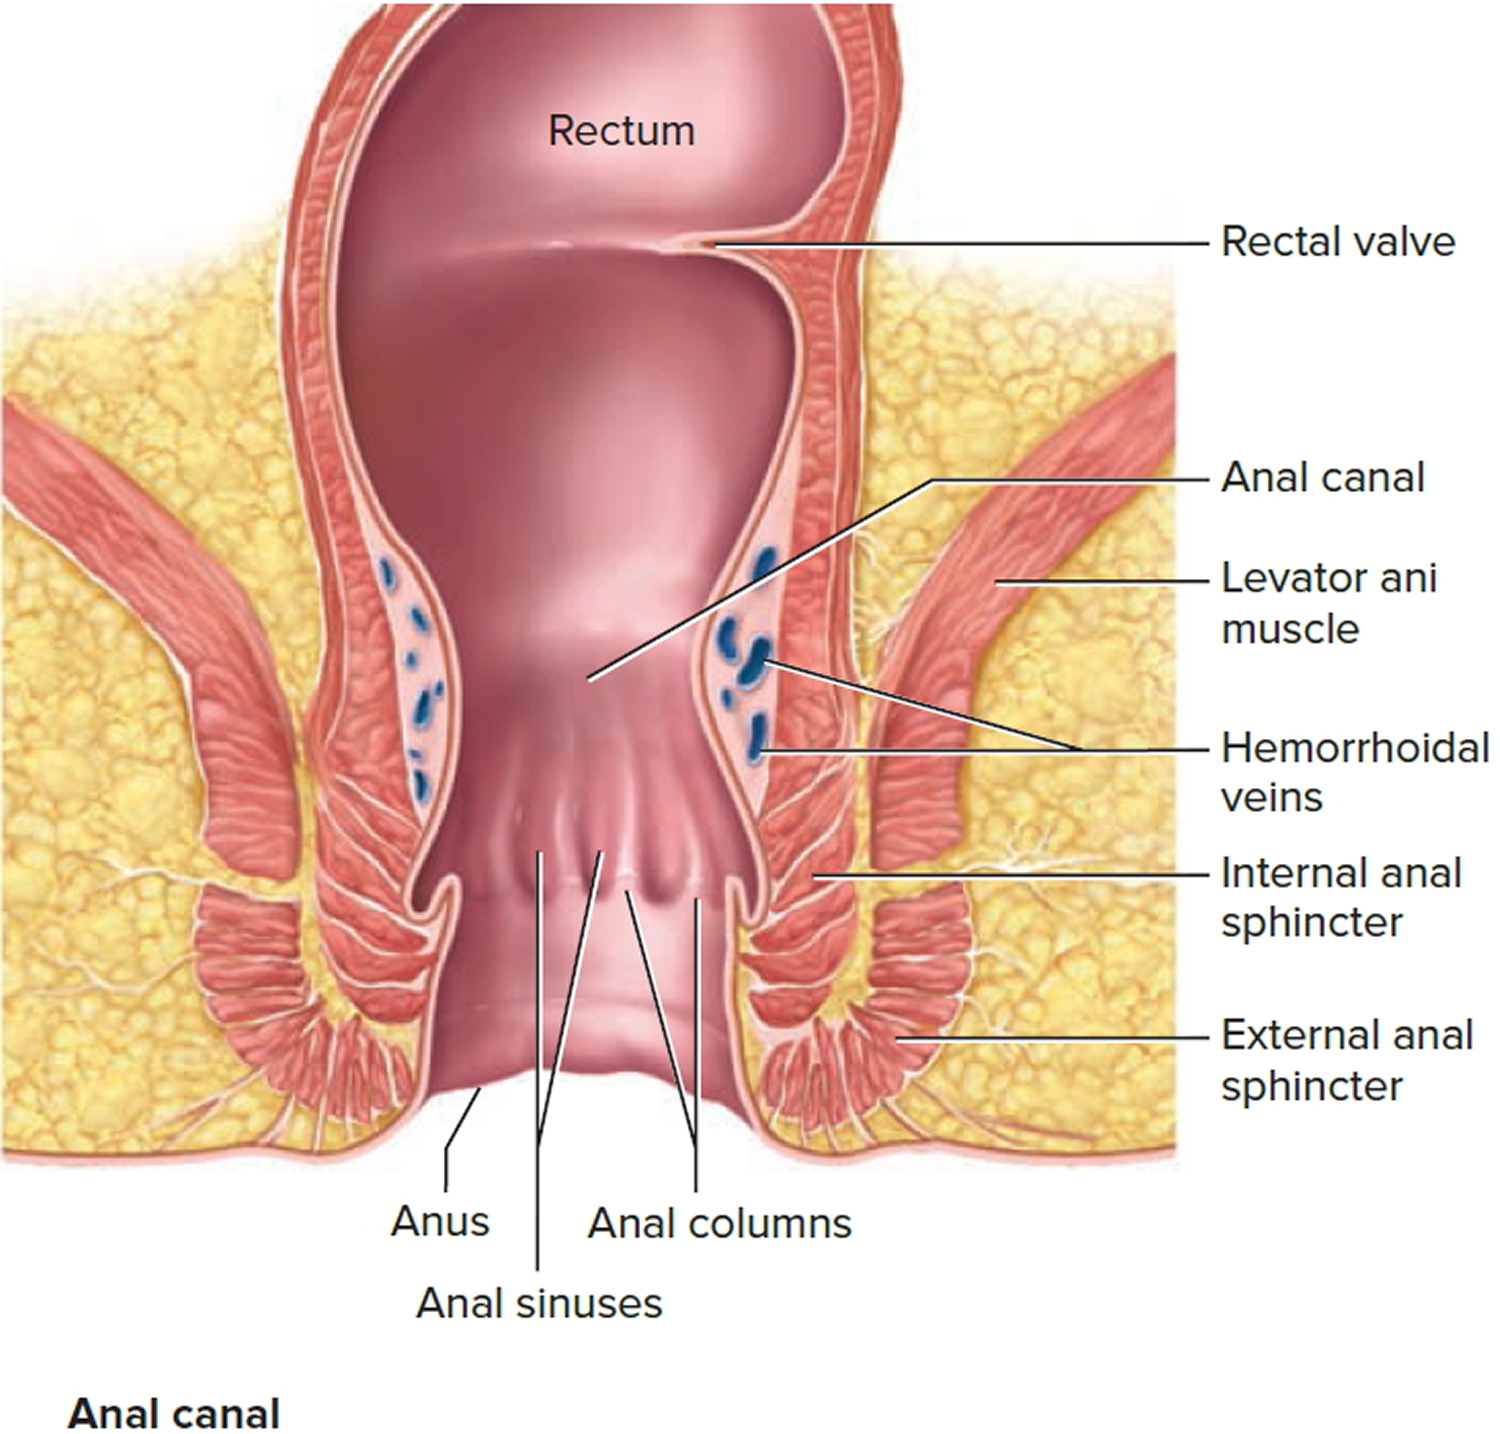 Hemorrhoids Causes Symptoms Treatment Home Remedies